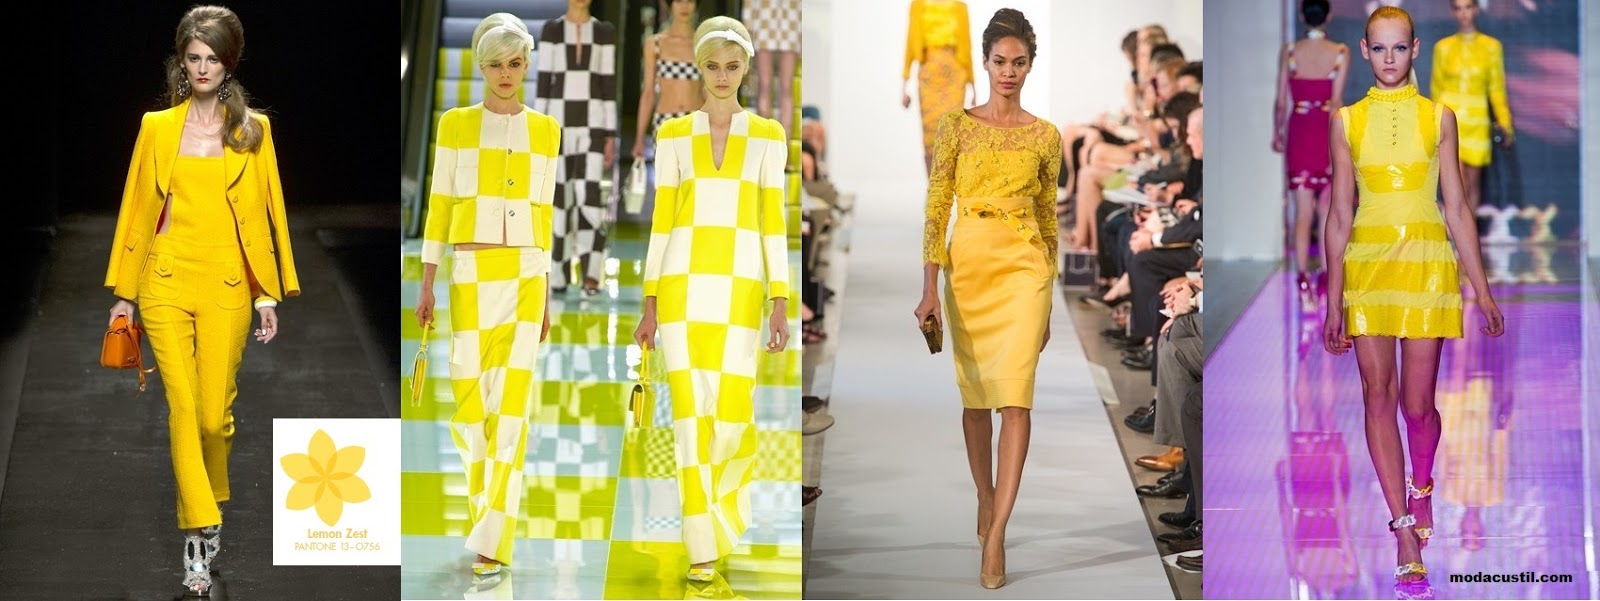 Lemon Zest - Colors Spring Summer 2013 Fashion